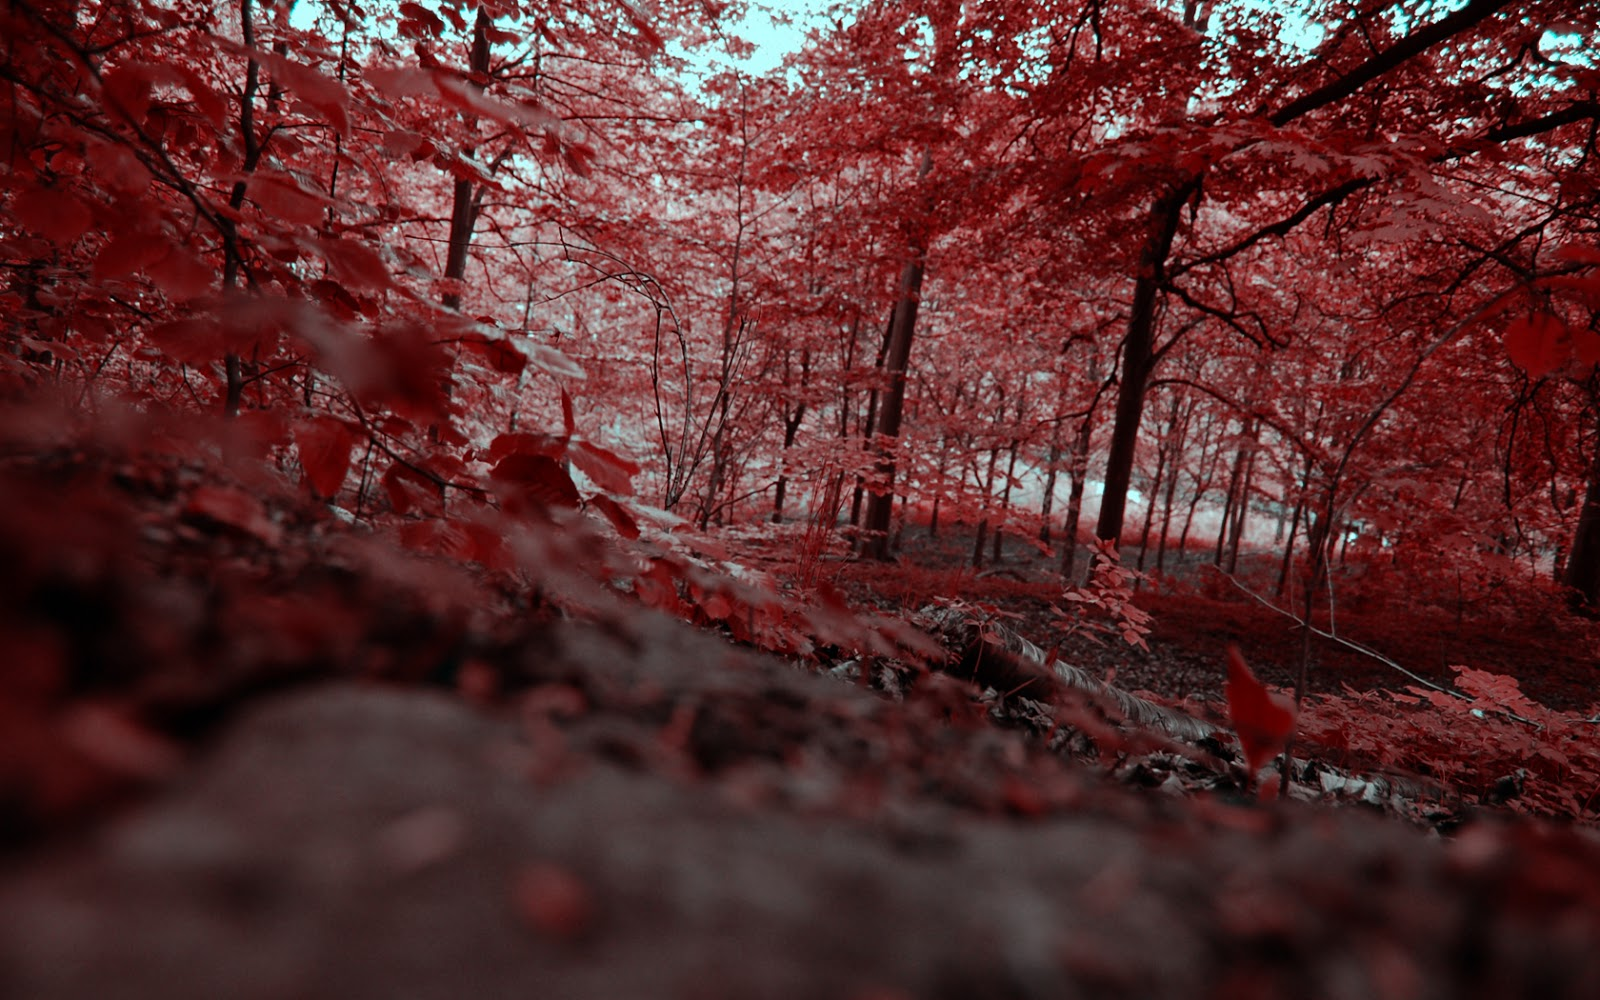 THE MOST AMAZING & WEIRDEST PLACES ON EARTH: THE RED FOREST